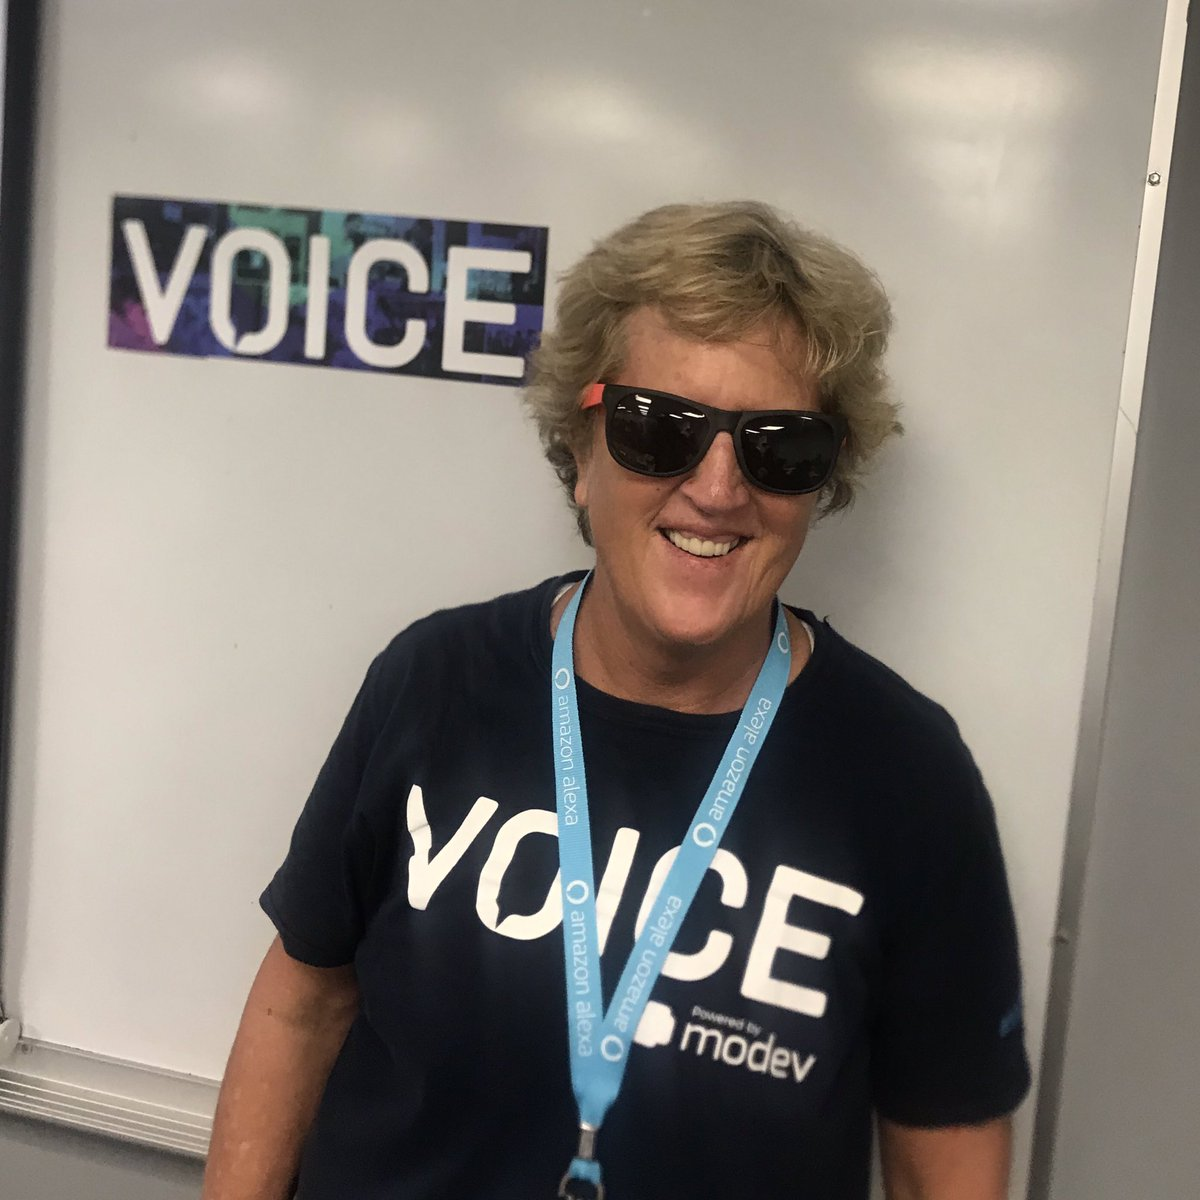 A+ afternoon workshop from @hculbertson on voice design for older adults, seniors & elders — Heidi is one of the most thoughtful and creative designers and entrepreneurs working in #voice — we wore  in our mock testing to simulate vision challenges #VOICE19<br>http://pic.twitter.com/2AvstorVLS